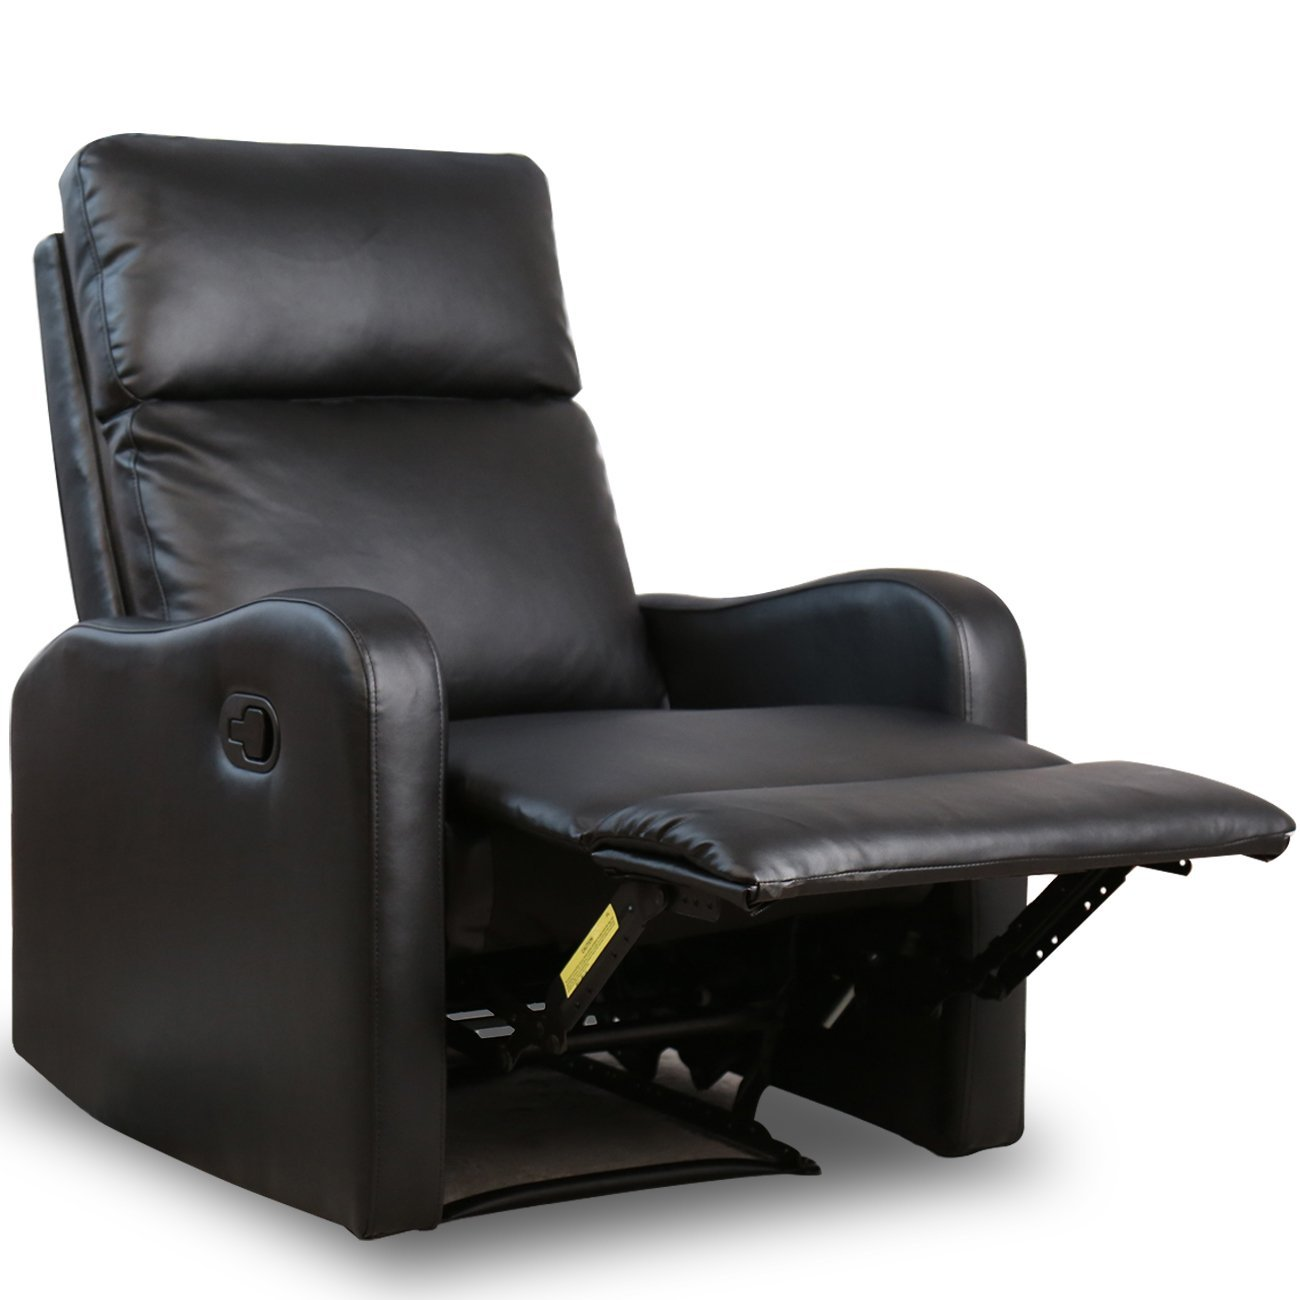 BONZY Recliner Chair Black Leather Chairs For Modern Living Room Durable  Framework